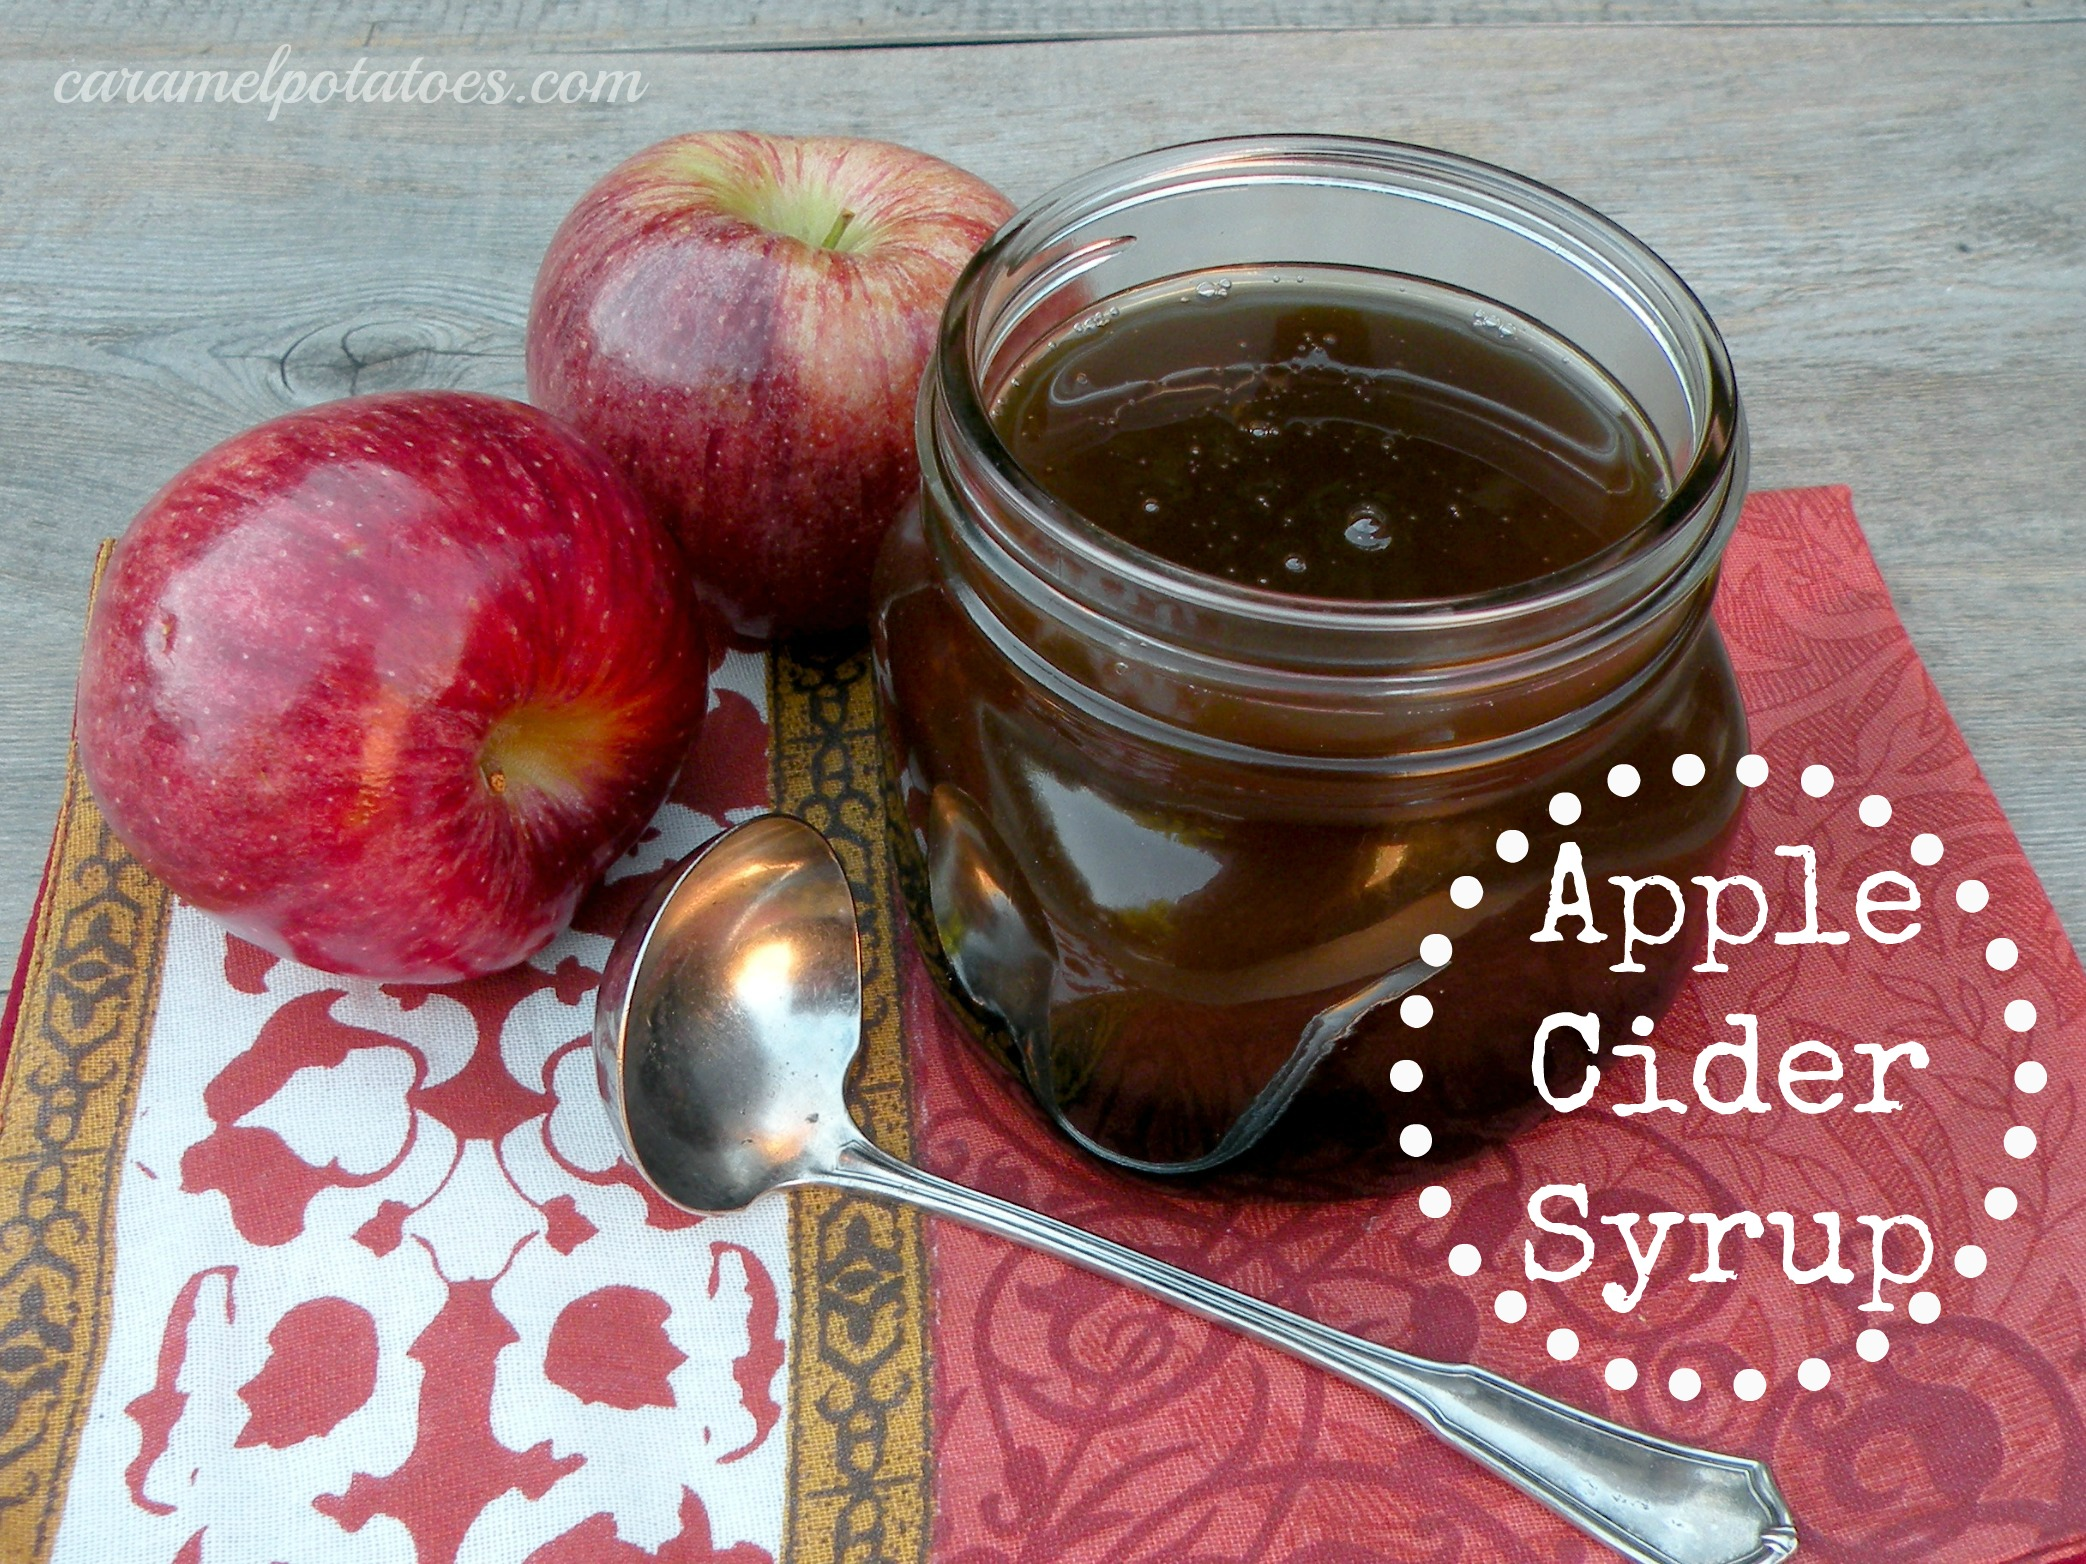 Caramel Potatoes » Apple Cider Syrup